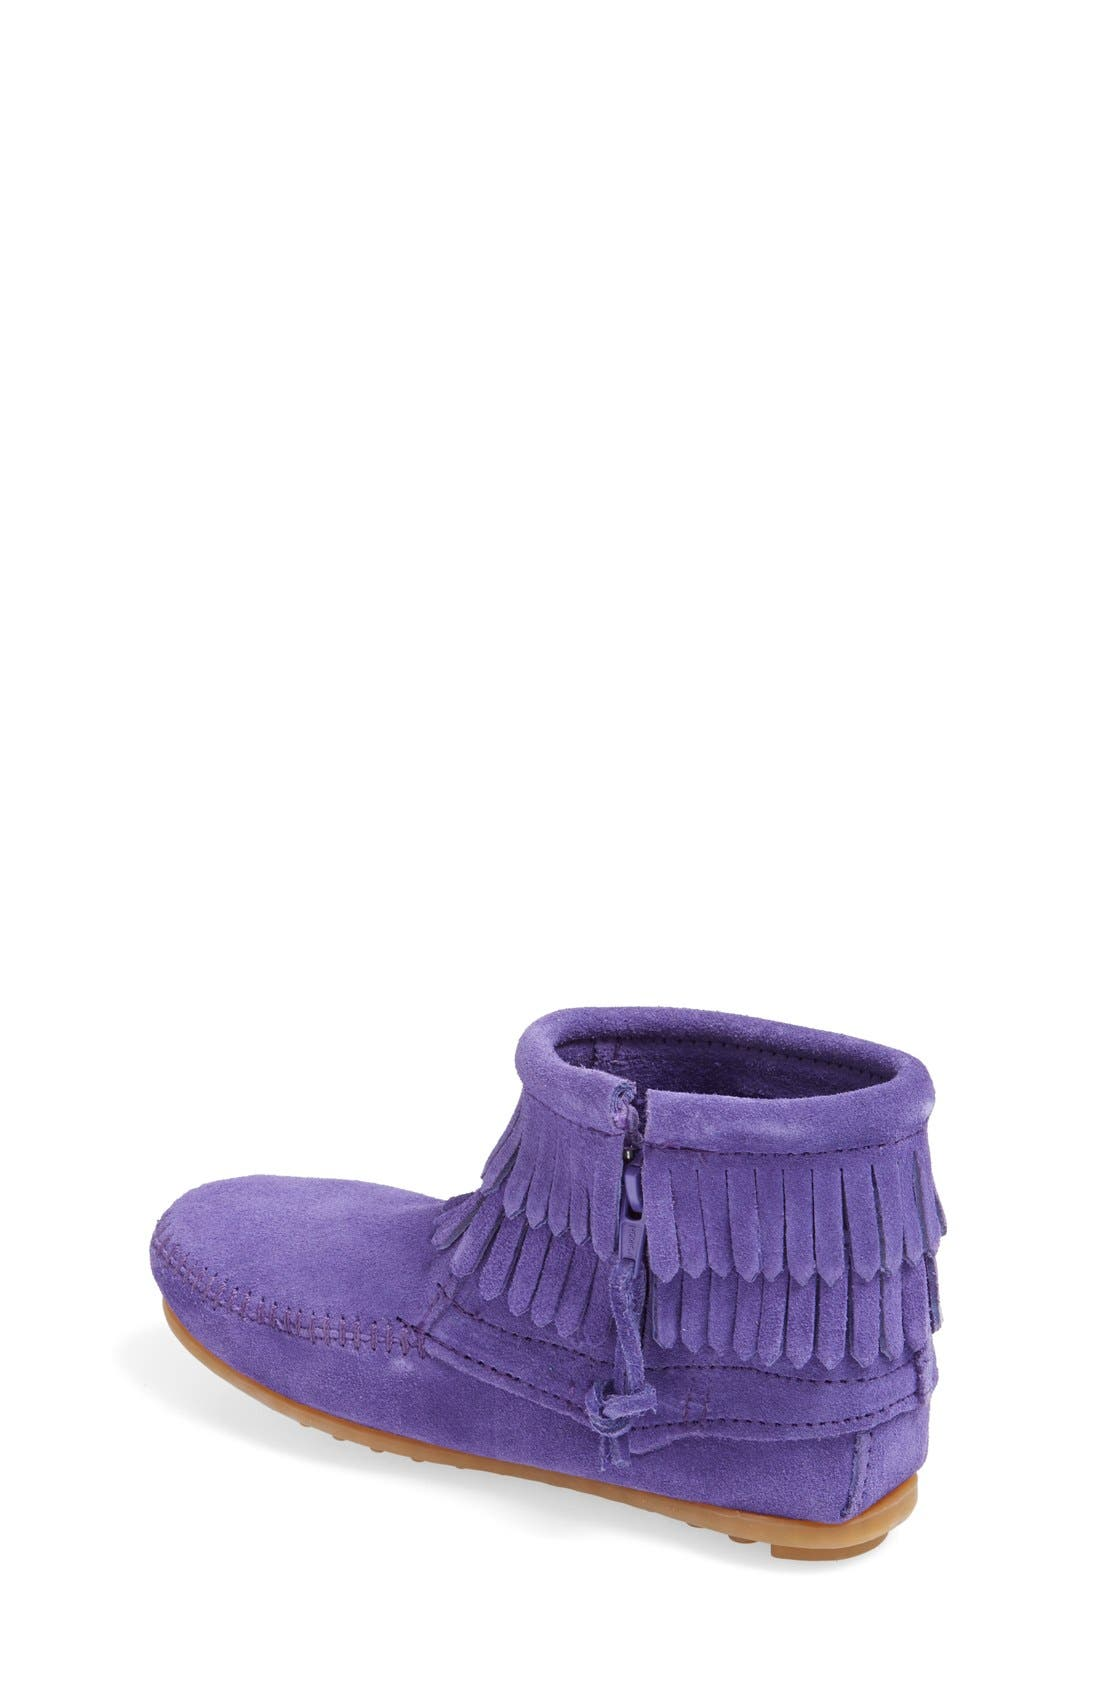 MINNETONKA, Double Fringe Moccasin, Alternate thumbnail 2, color, 524